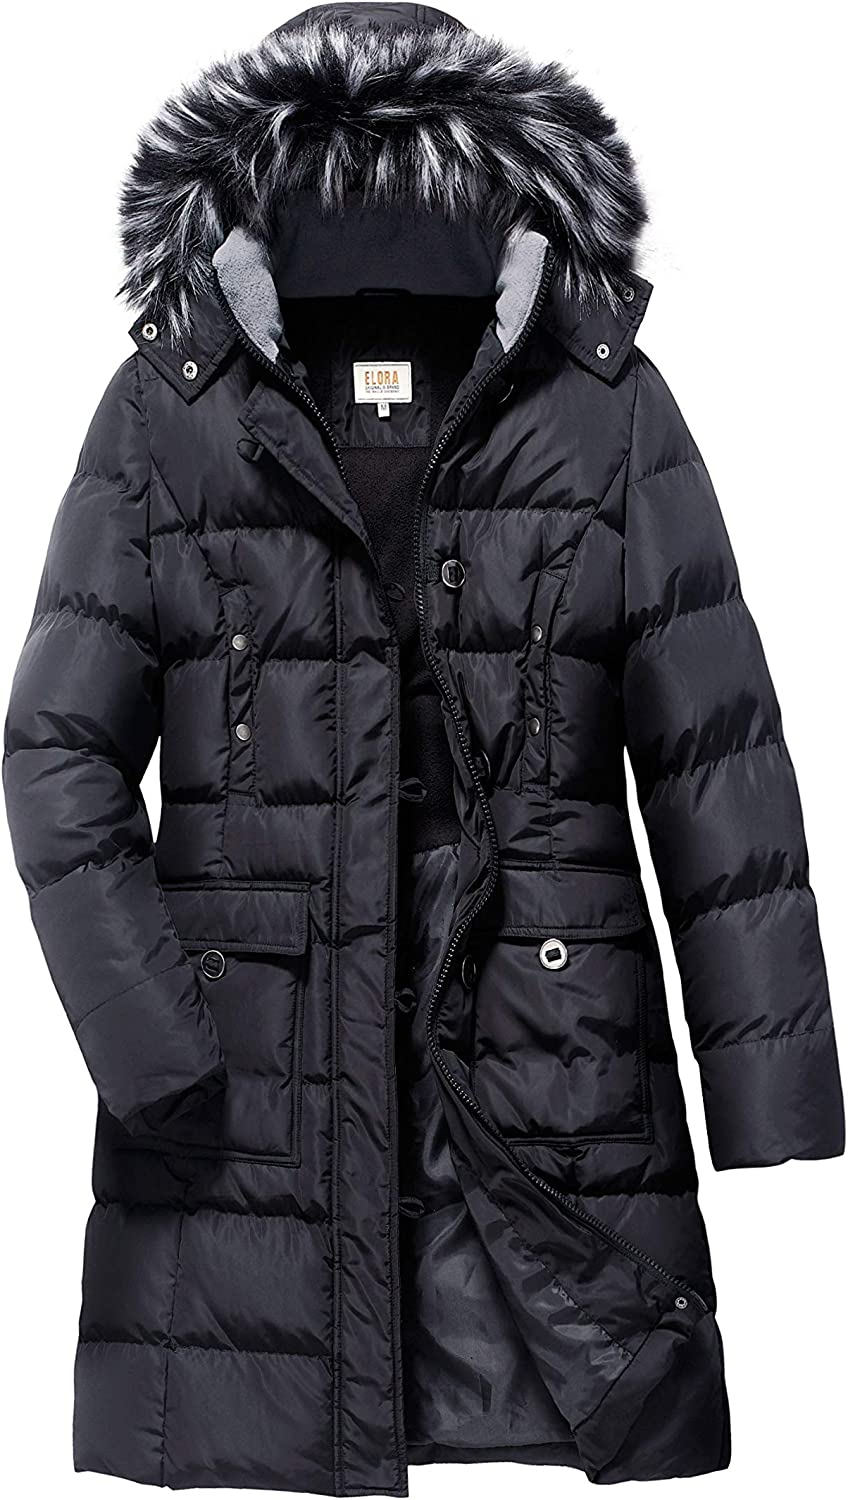 ELORA Women's Plus Size Winter Puffer Cargo Pocket Coat Fur Trim Removable Hood